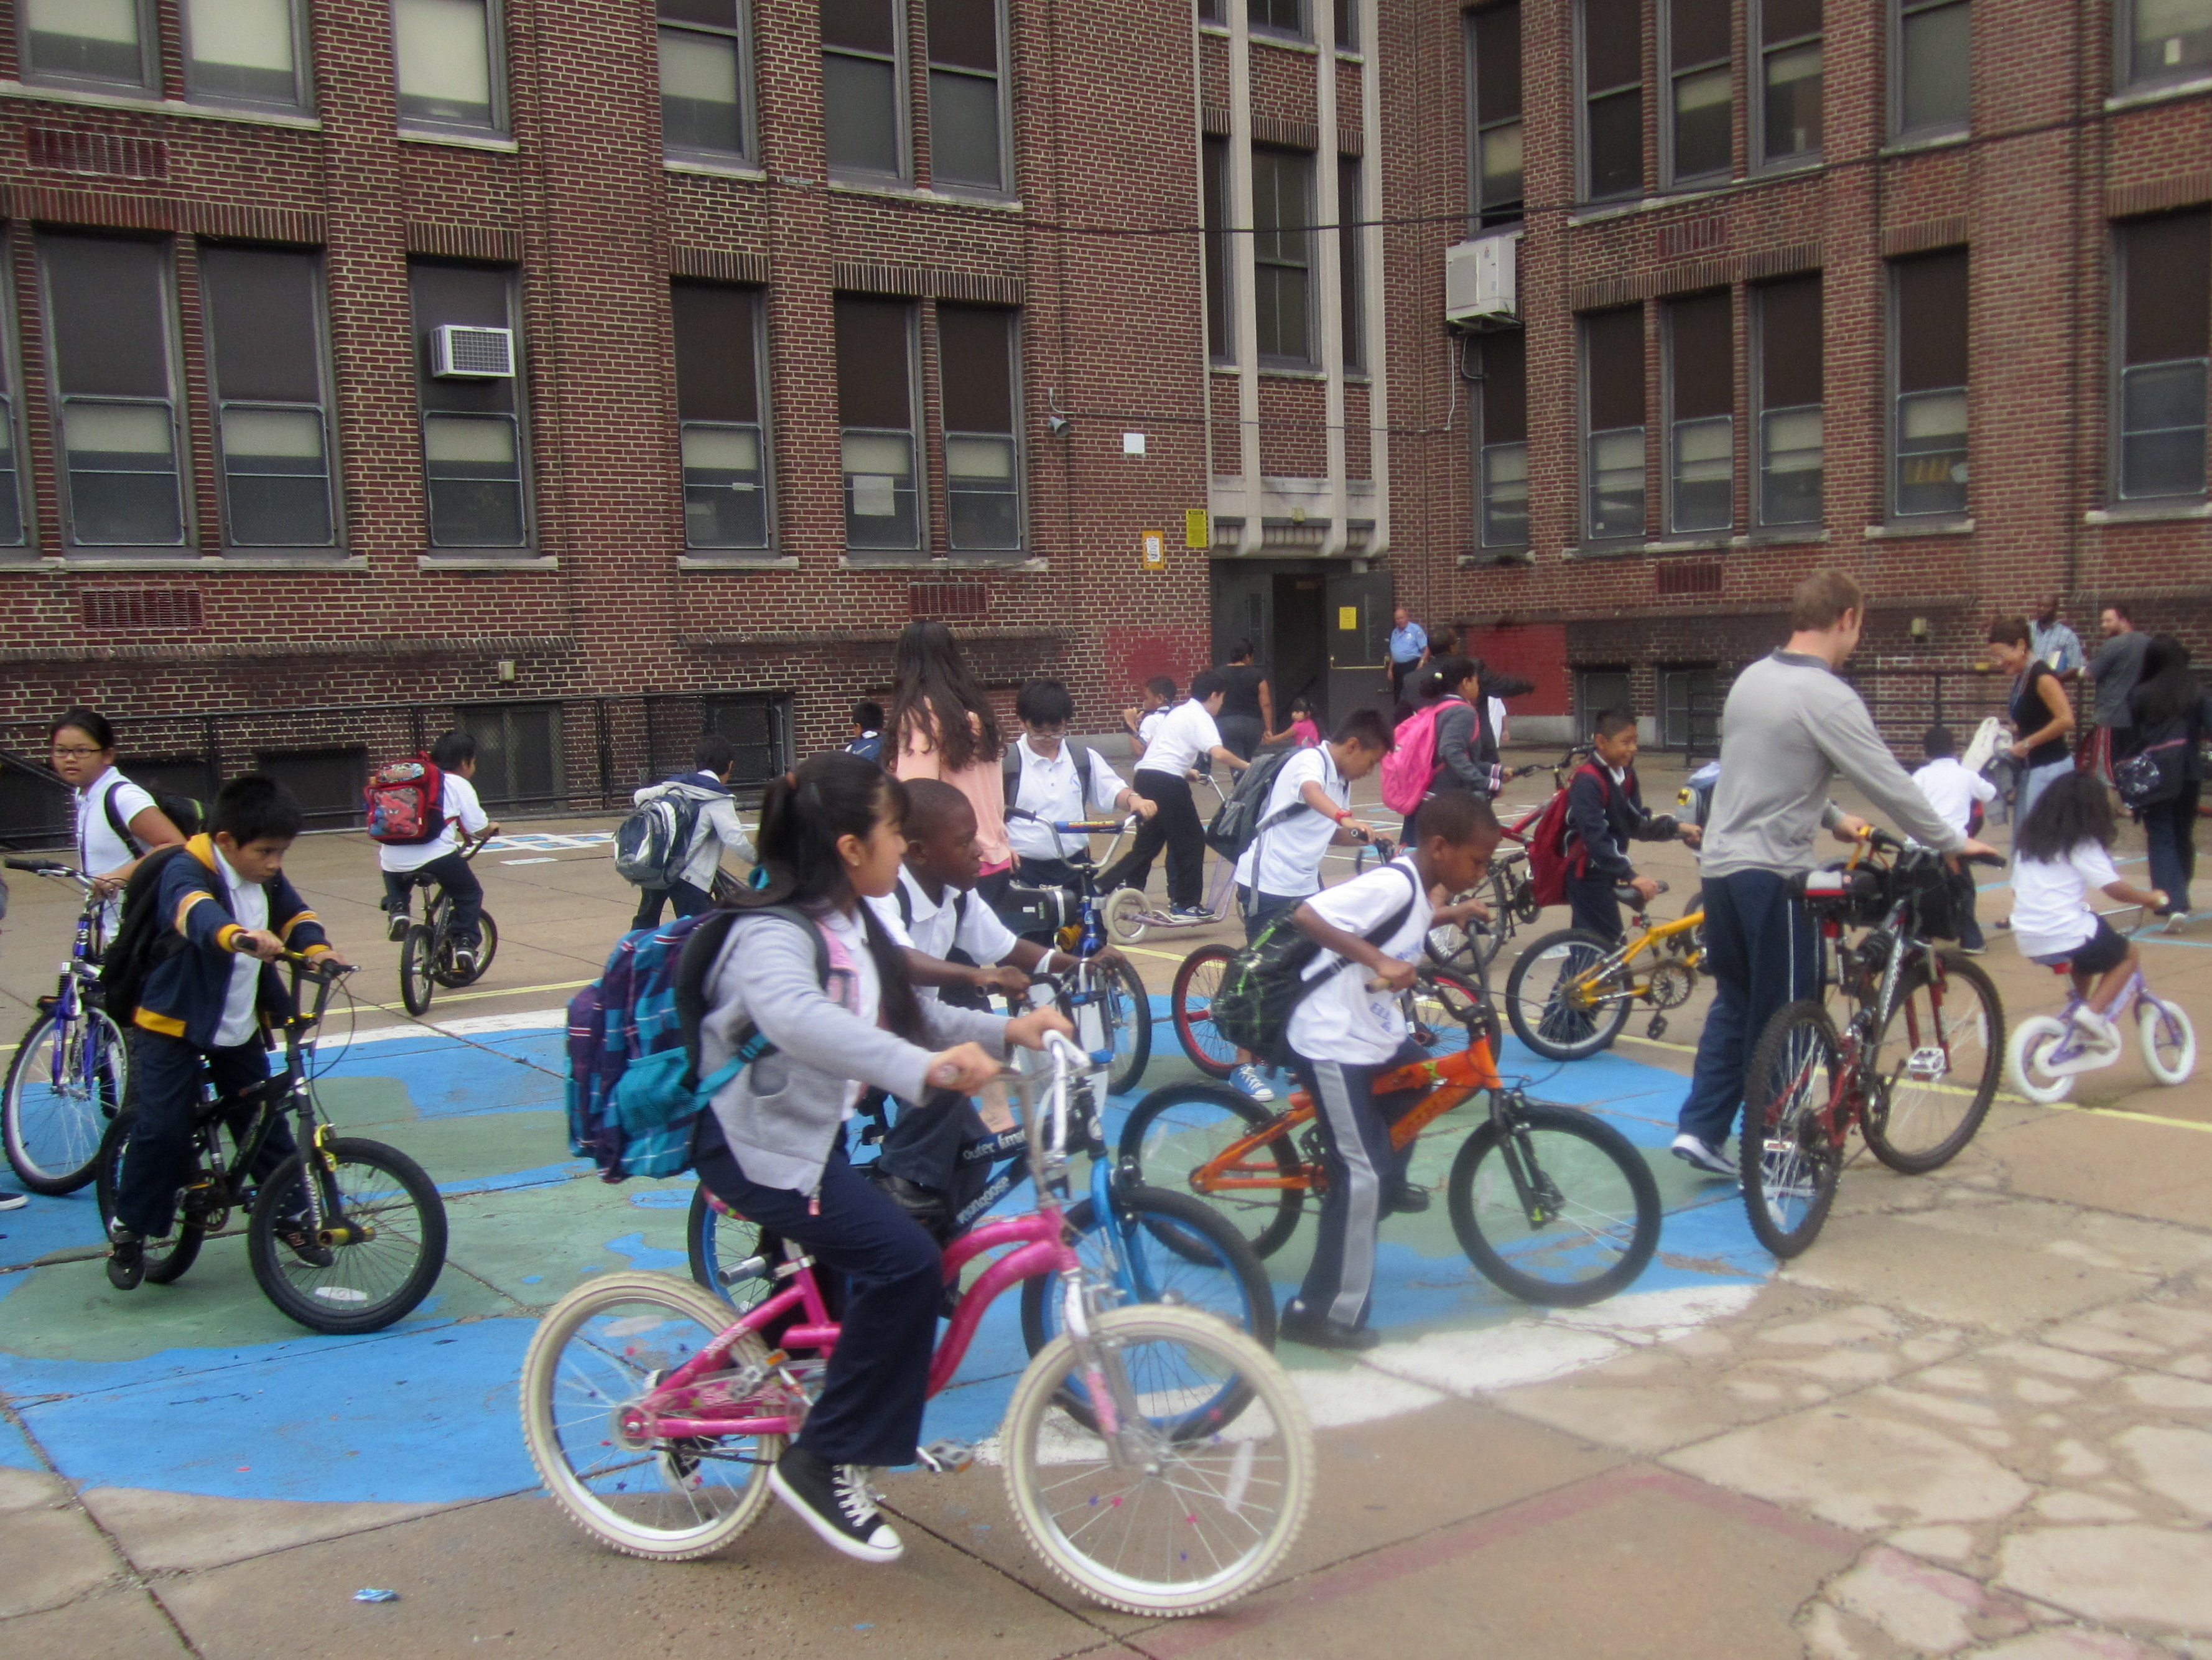 Students gathered in the George Washington Elementary School courtyard after walking and biking to school Thursday